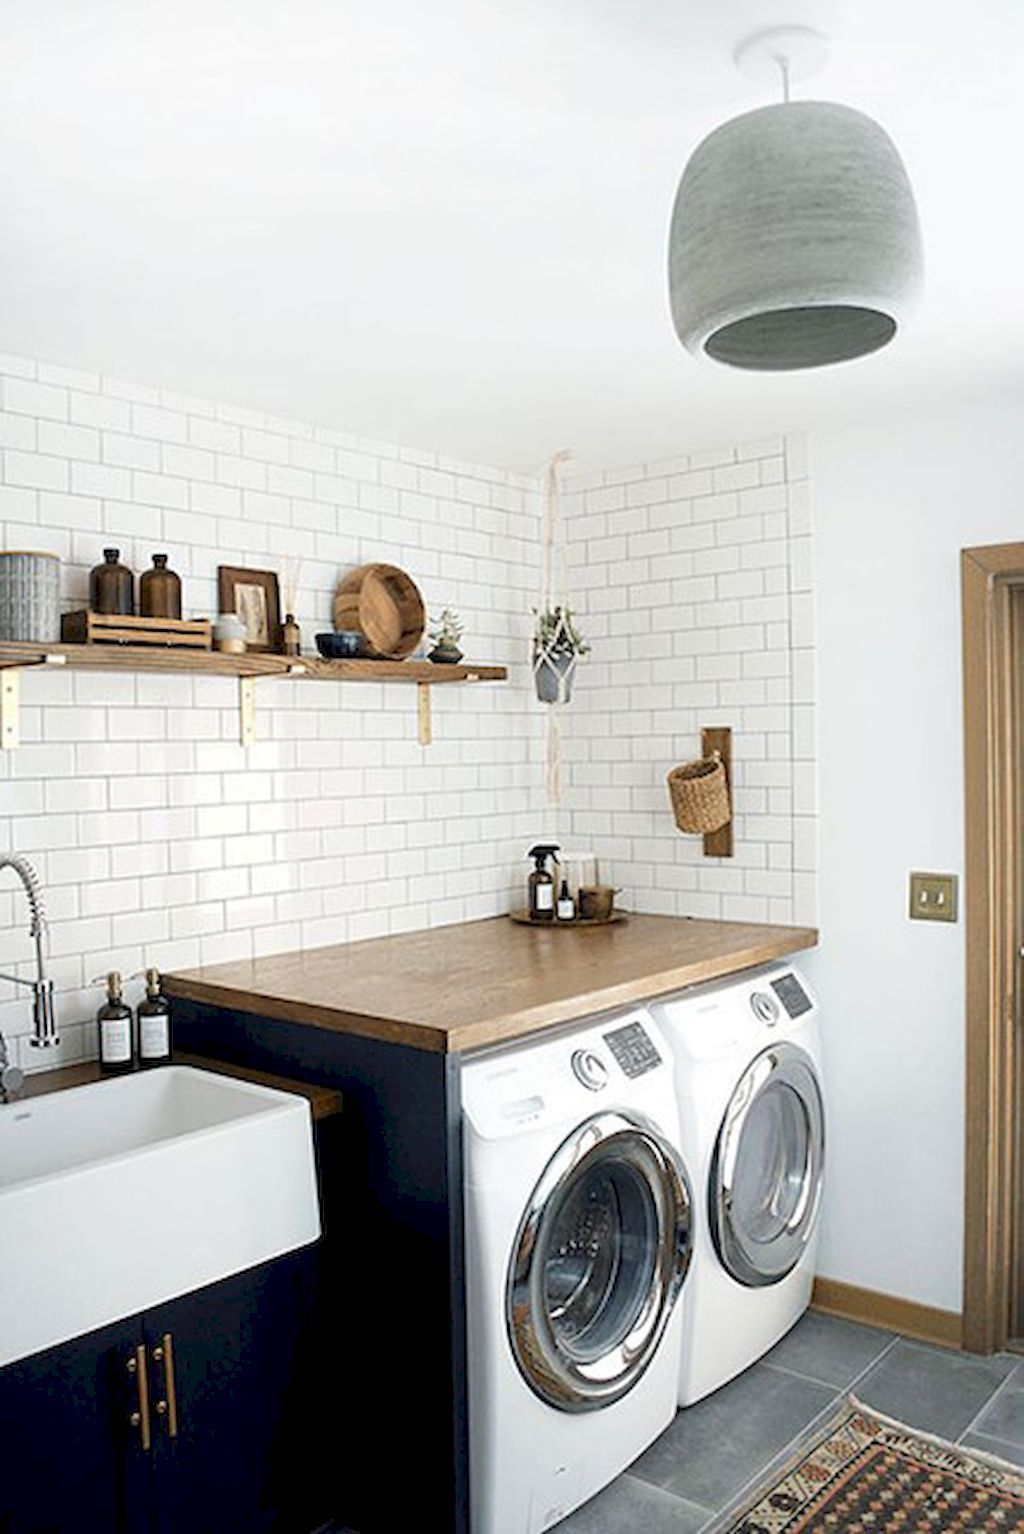 20 scandinavian laundry room design ideas for your on extraordinary small laundry room design and decorating ideas modest laundry space id=47455